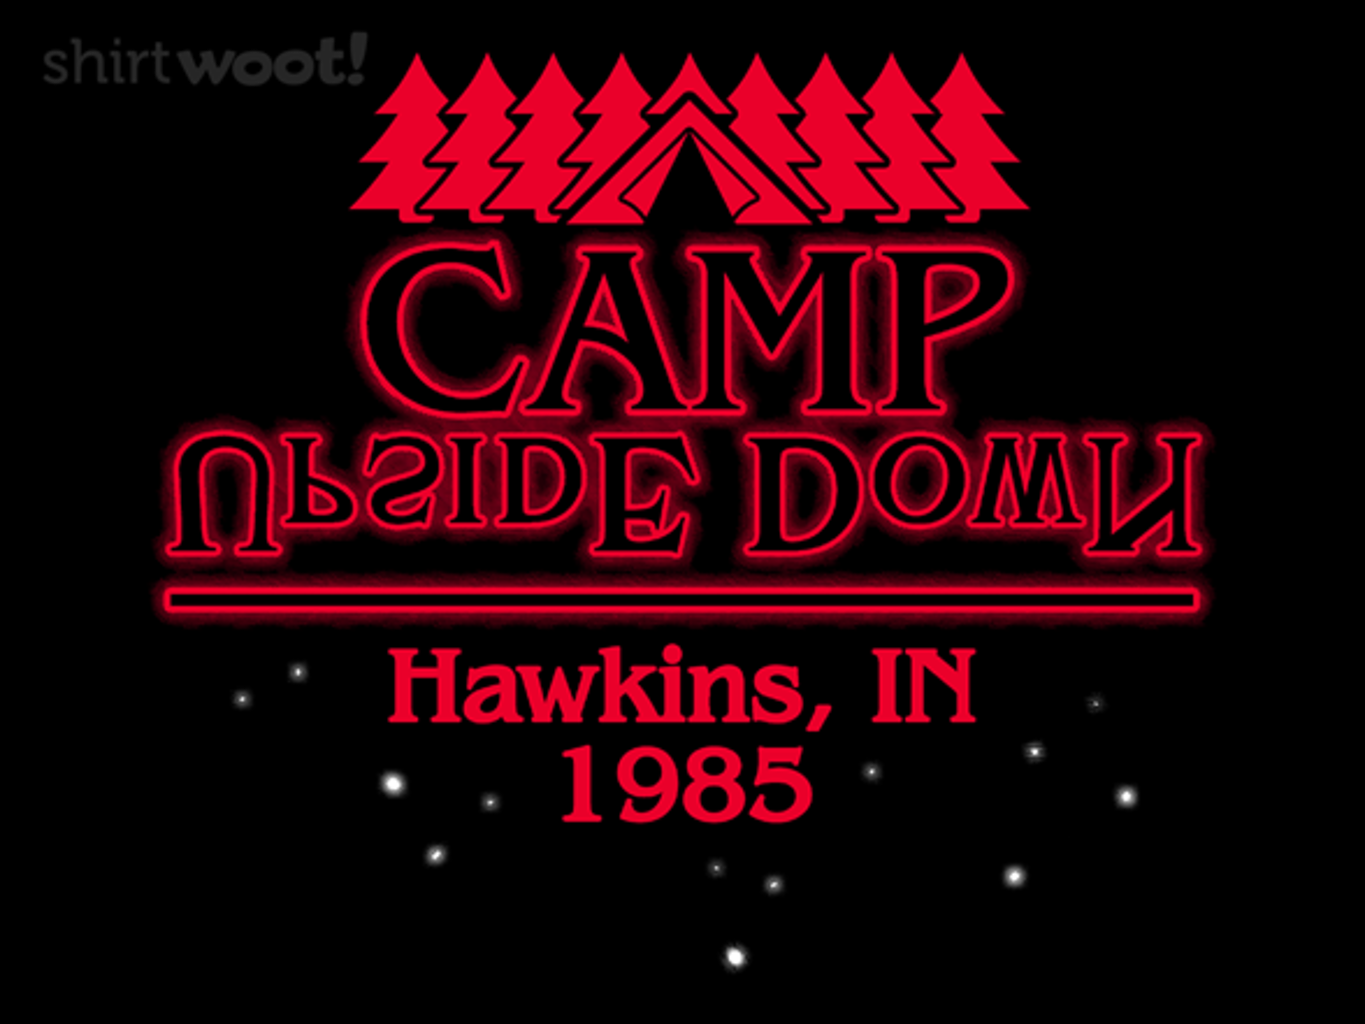 Woot!: Camp Upside Down